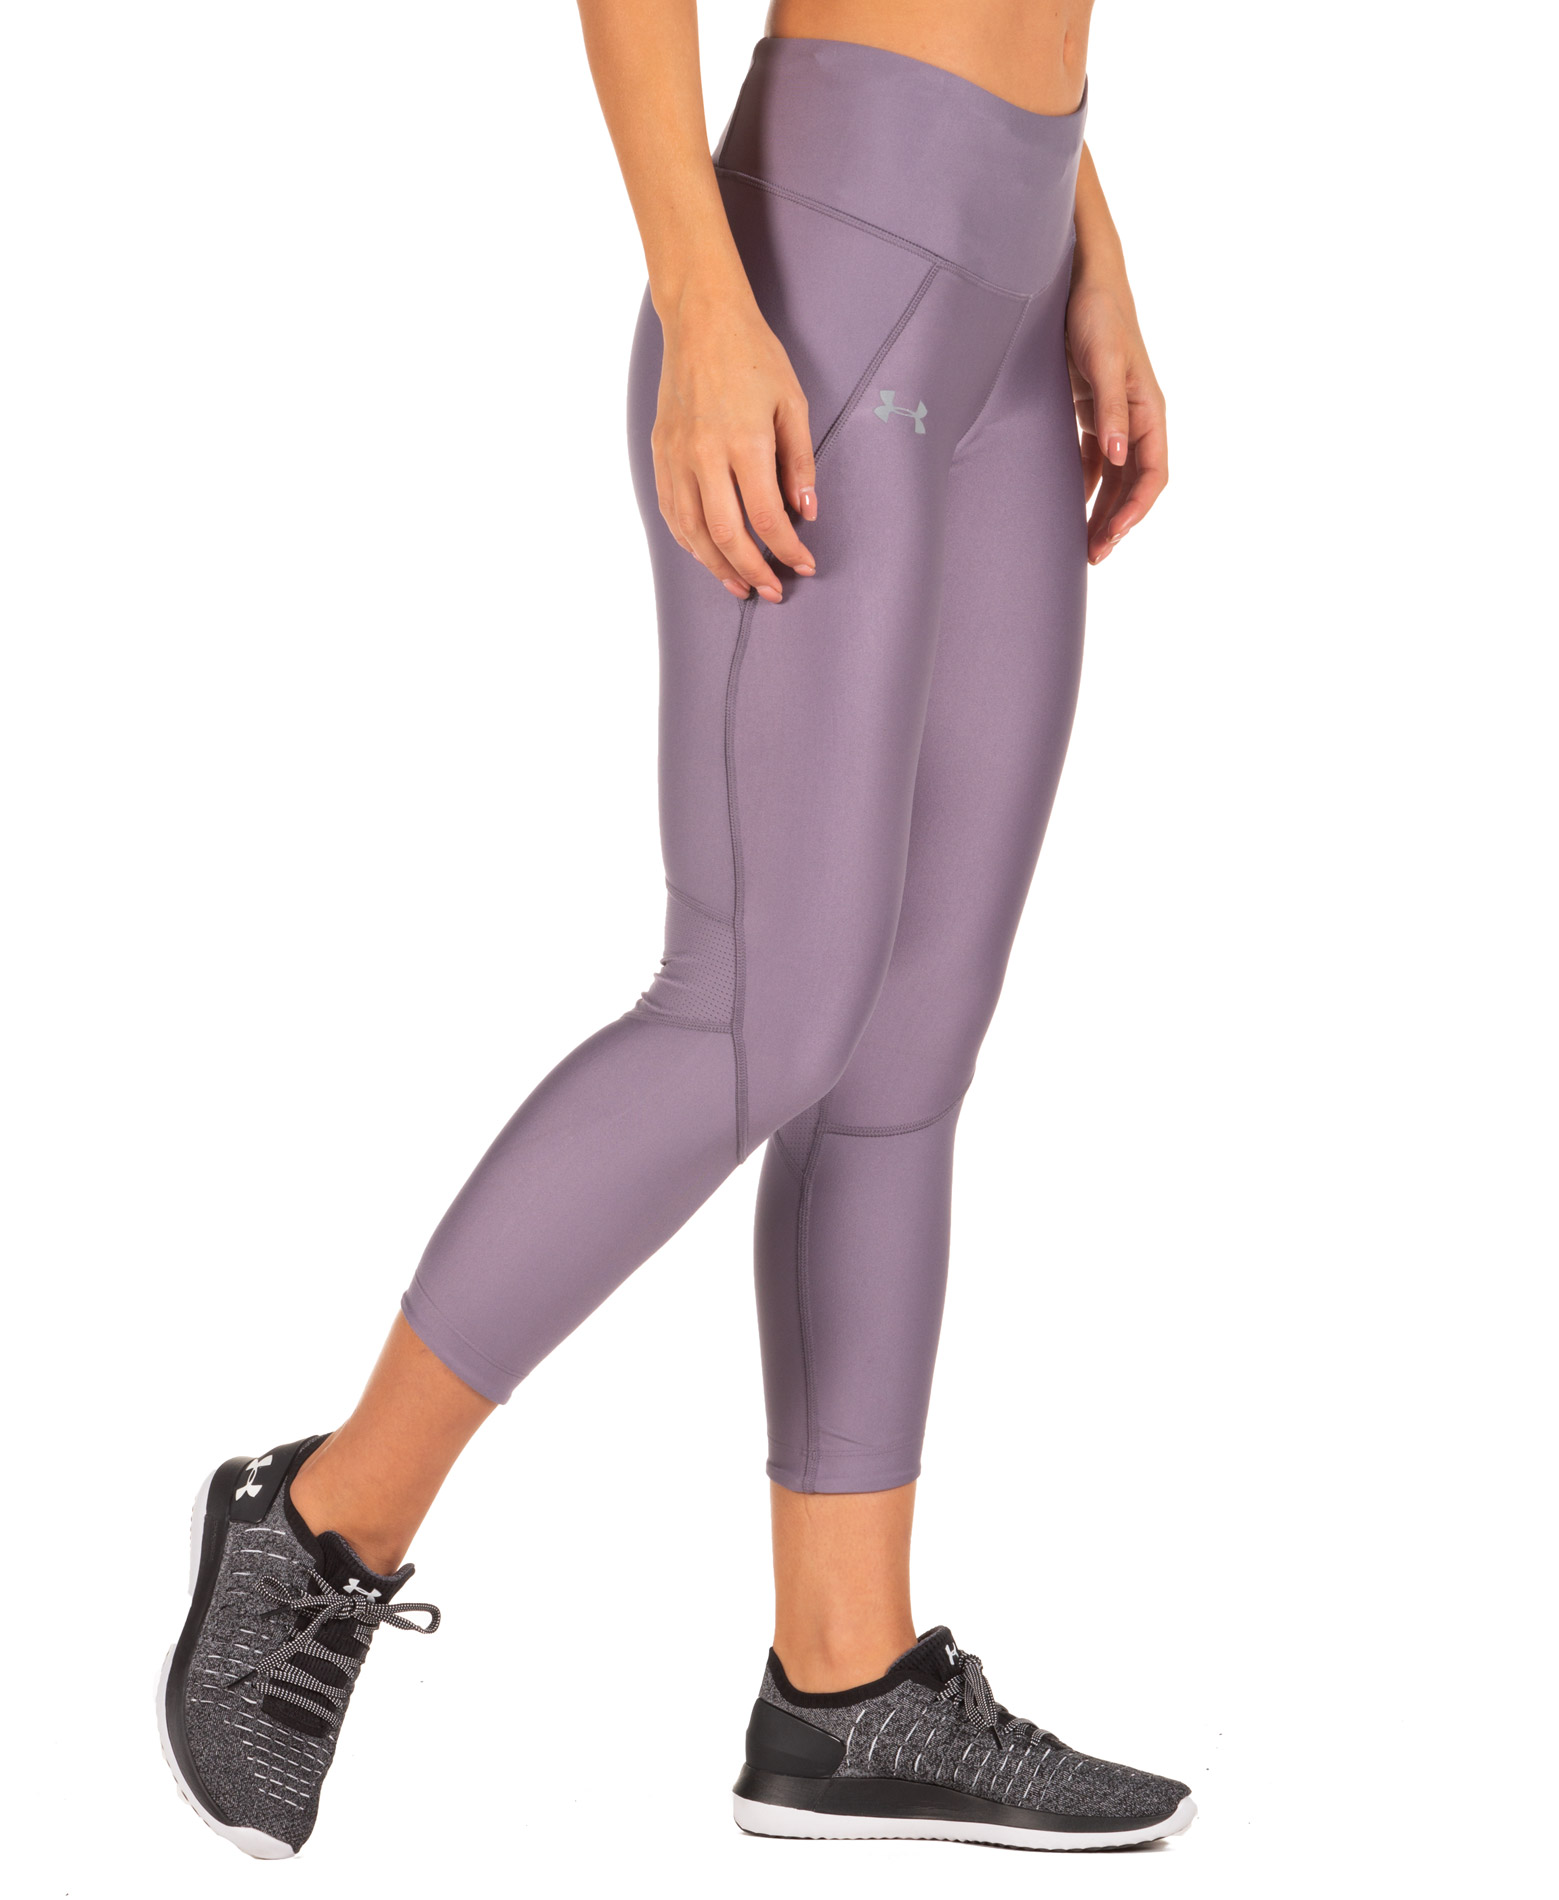 UNDER ARMOUR FLY FAST CROP 1317290-033 Ανθρακί